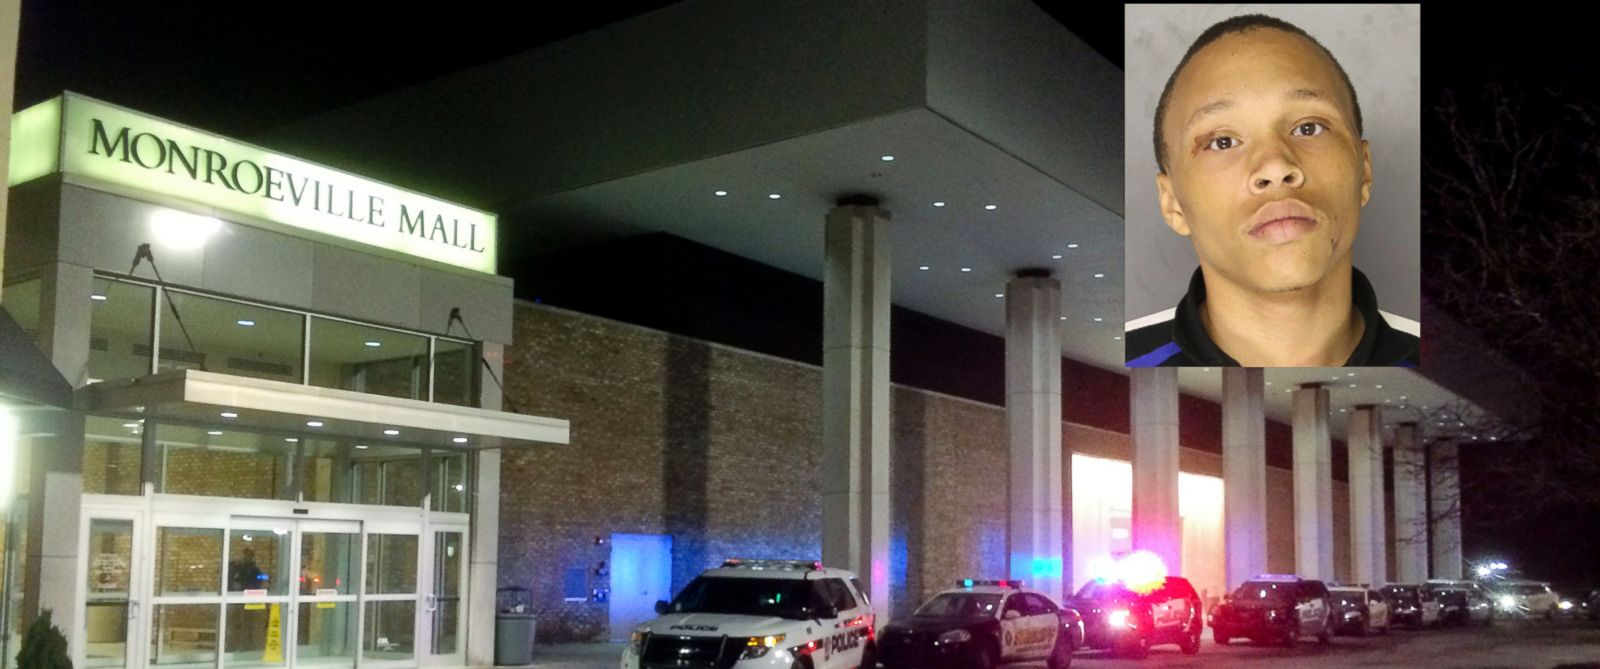 Police vehicles line up outside Monroeville (Pa) Mall Saturday, Feb. 7 2015, after a shooting took place inside. Tarod Thornhill, insert, was charged in connection with the shooting.